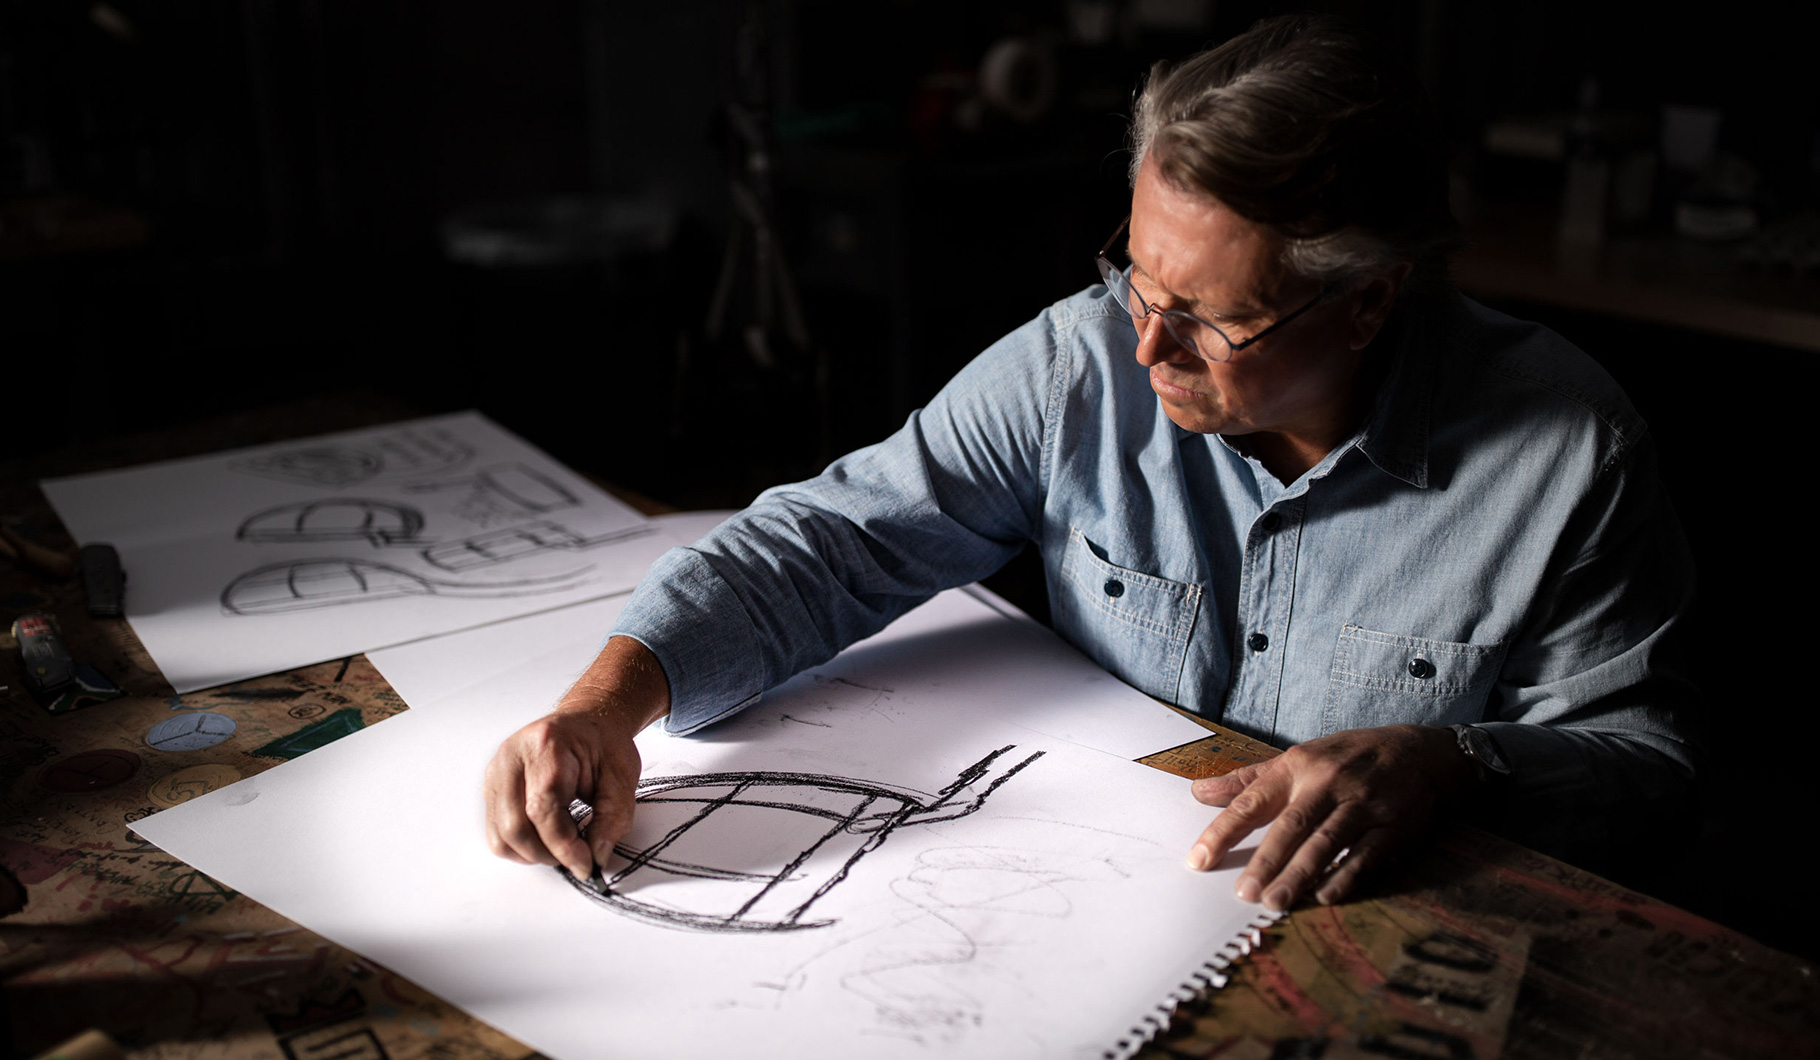 Image of Scotty Cameron sketching